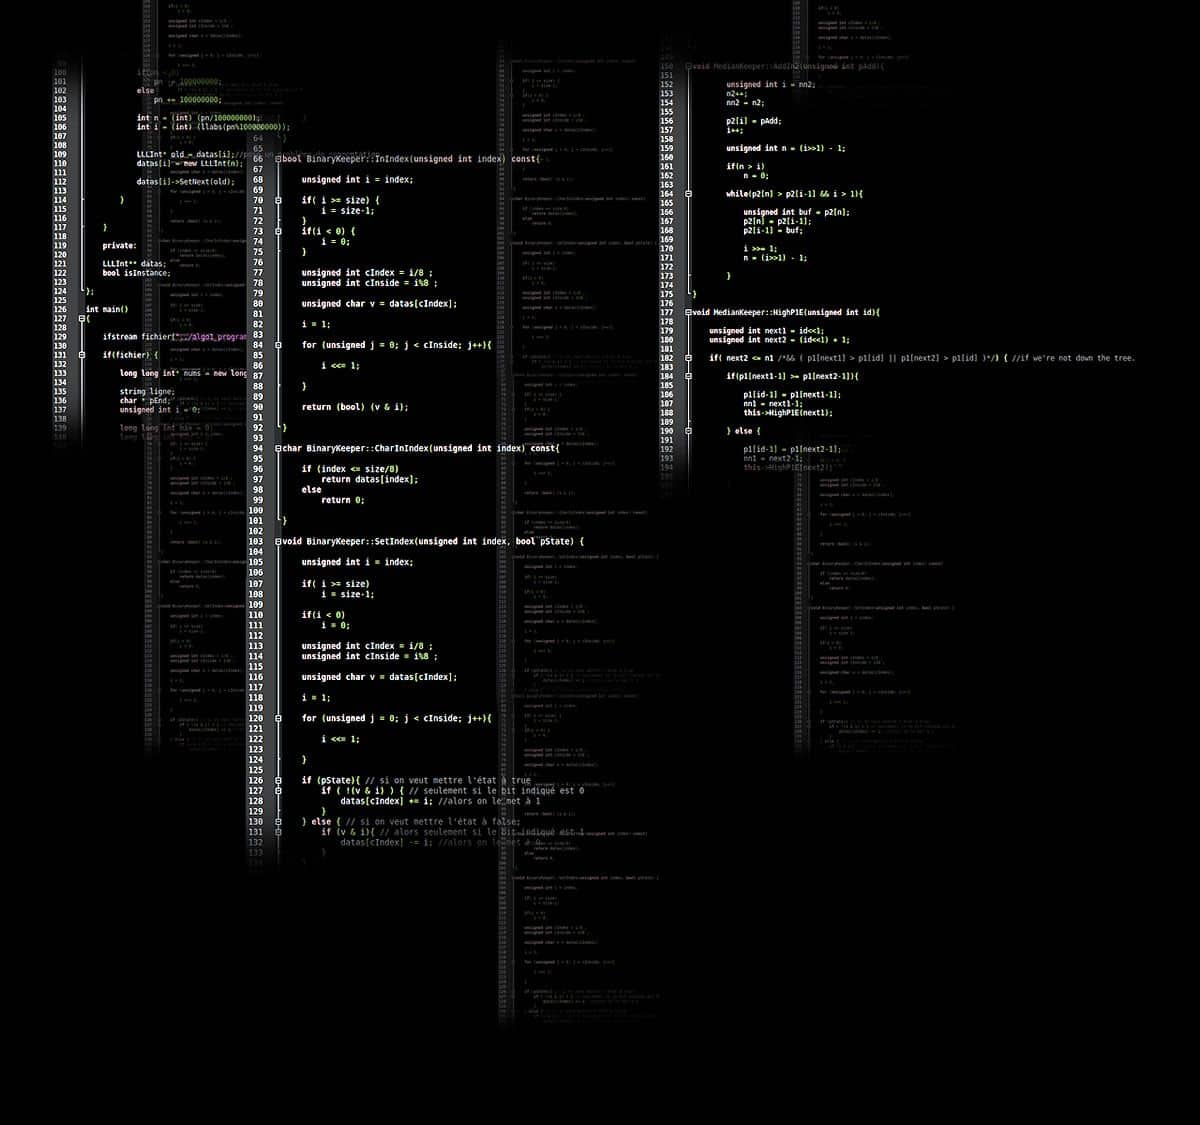 Screens of code represent how the future of mobile app development is about a race against time.